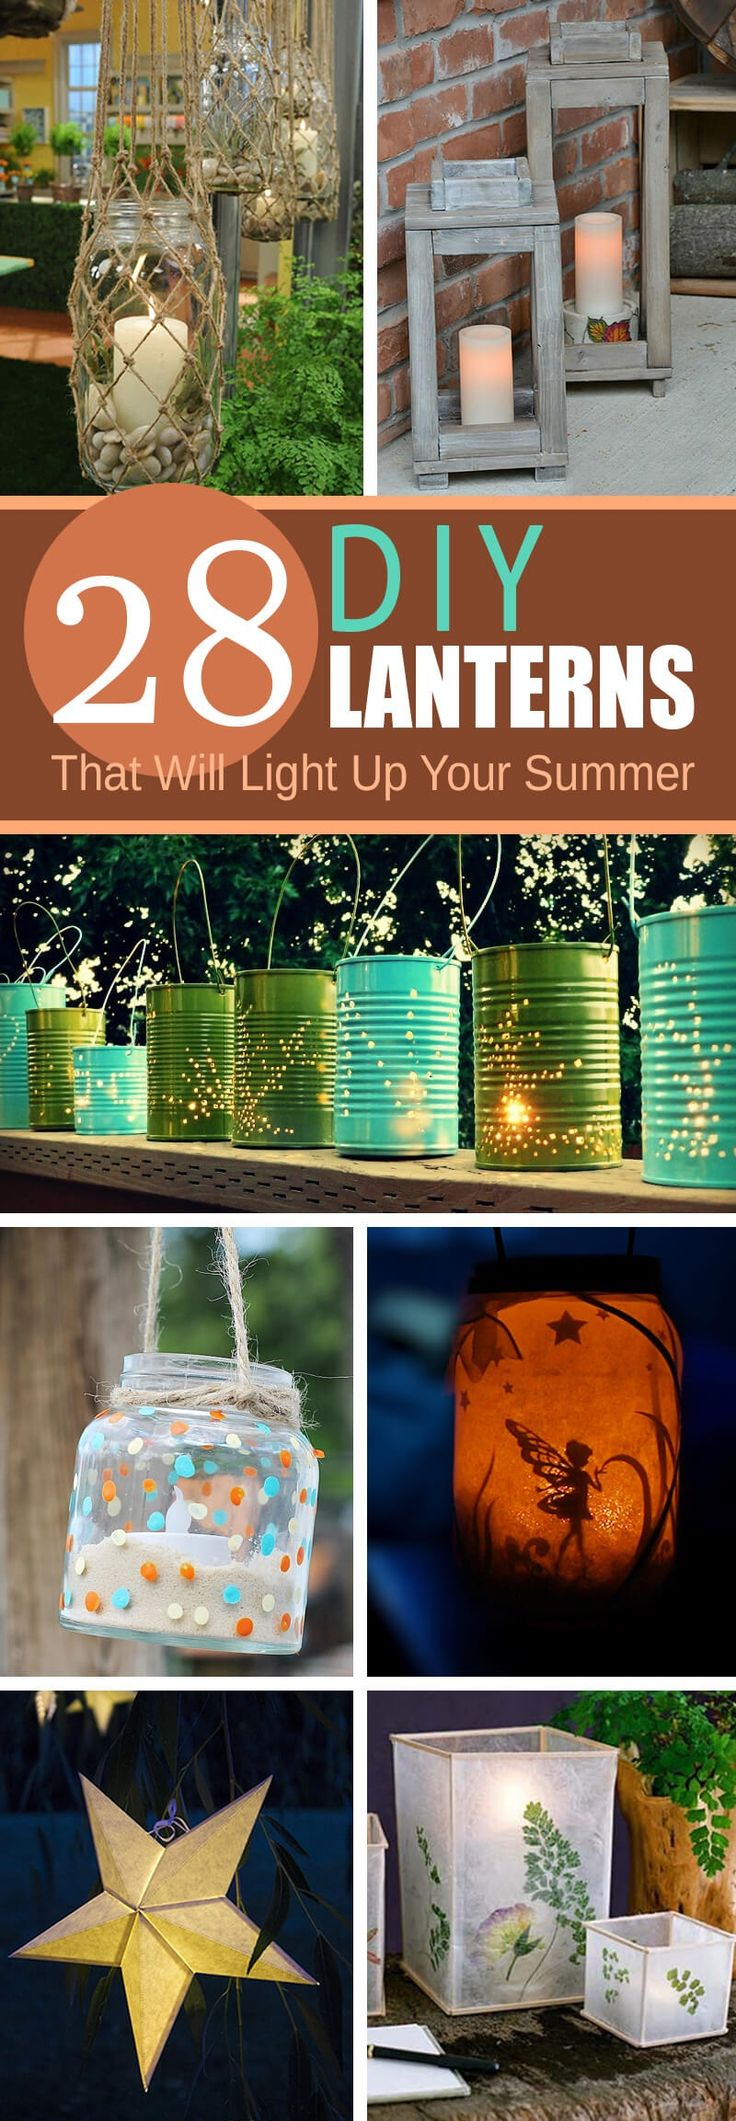 If you need some extra light in your yard but don't want to pay for expensive permanent lighting fixtures, DIY garden lanterns are a great alternative. With simple tools and easy to find materials, you can create everything from rustic wooden candle holders to delicate, twinkling tea light c...